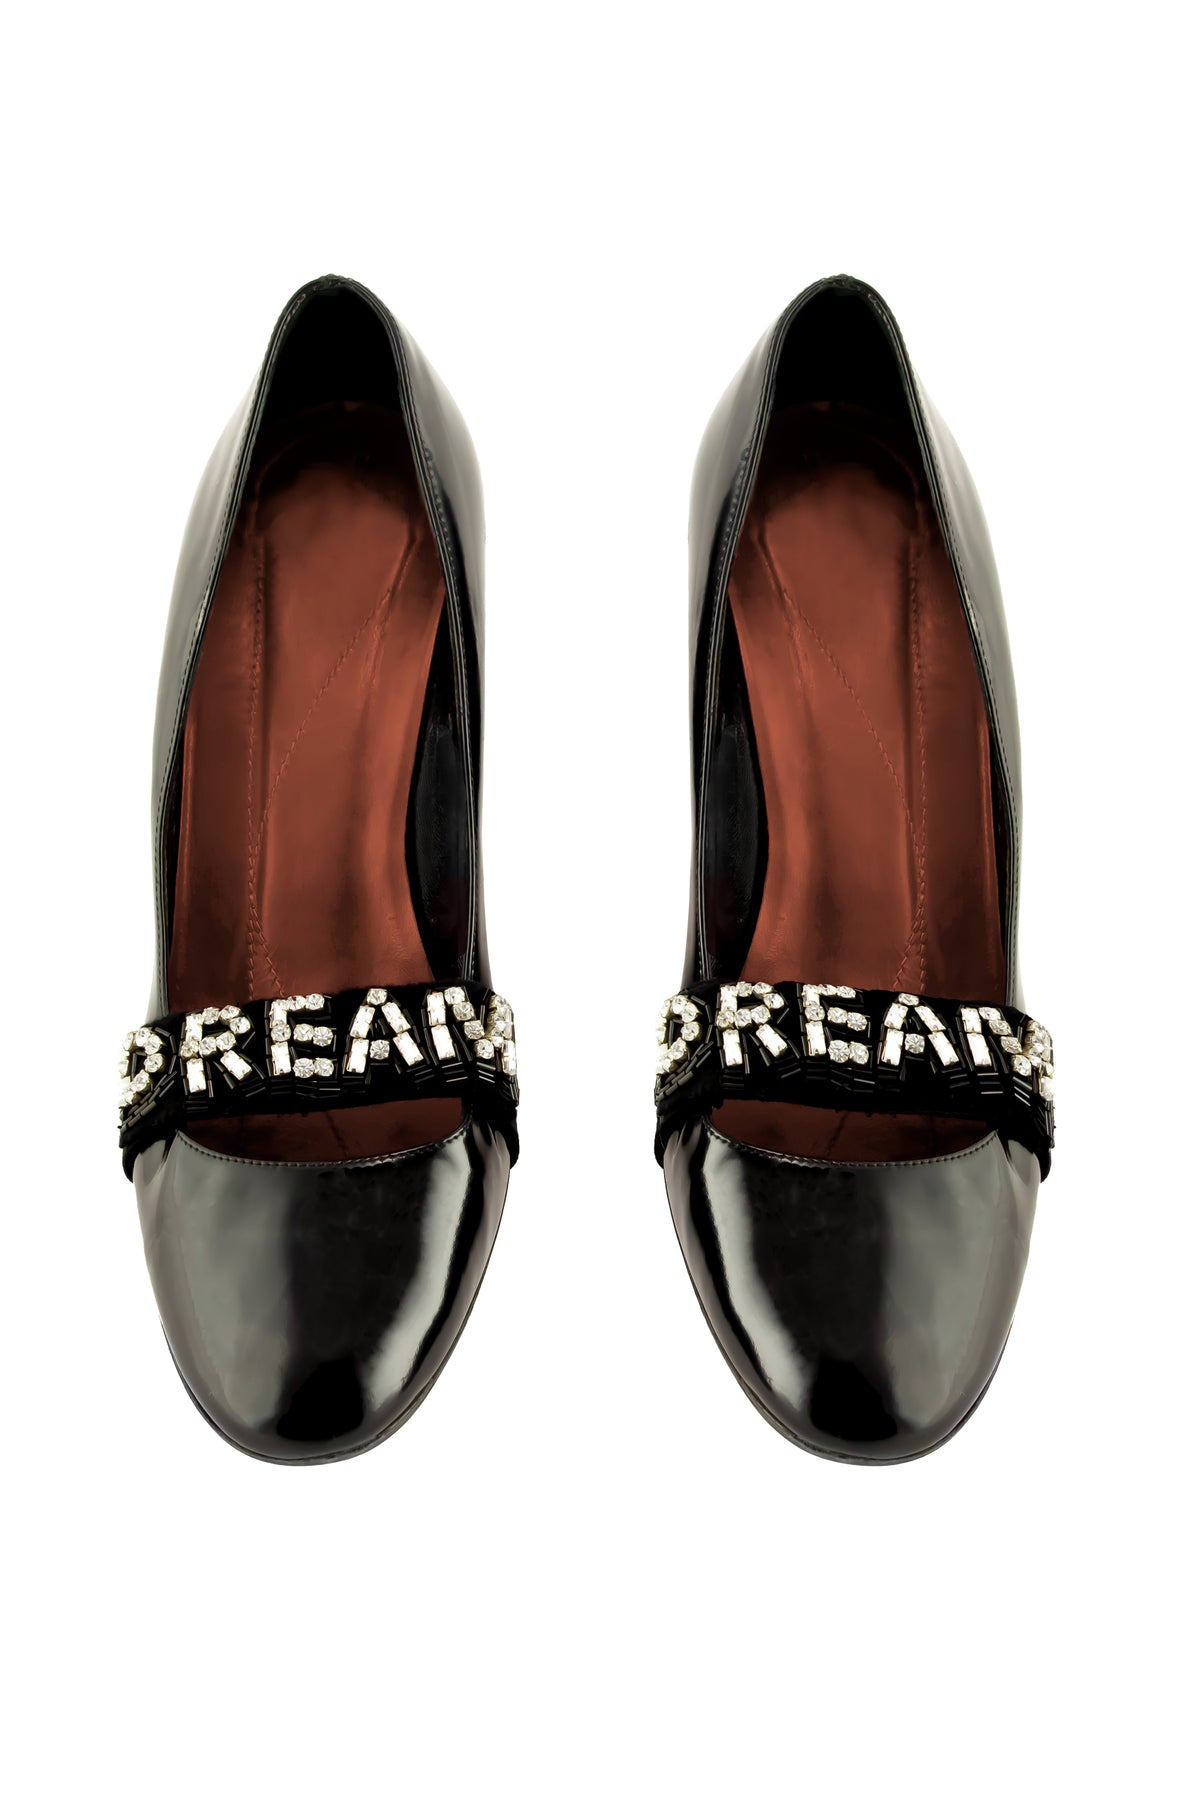 Dream Shoe Strap - Black Elastic